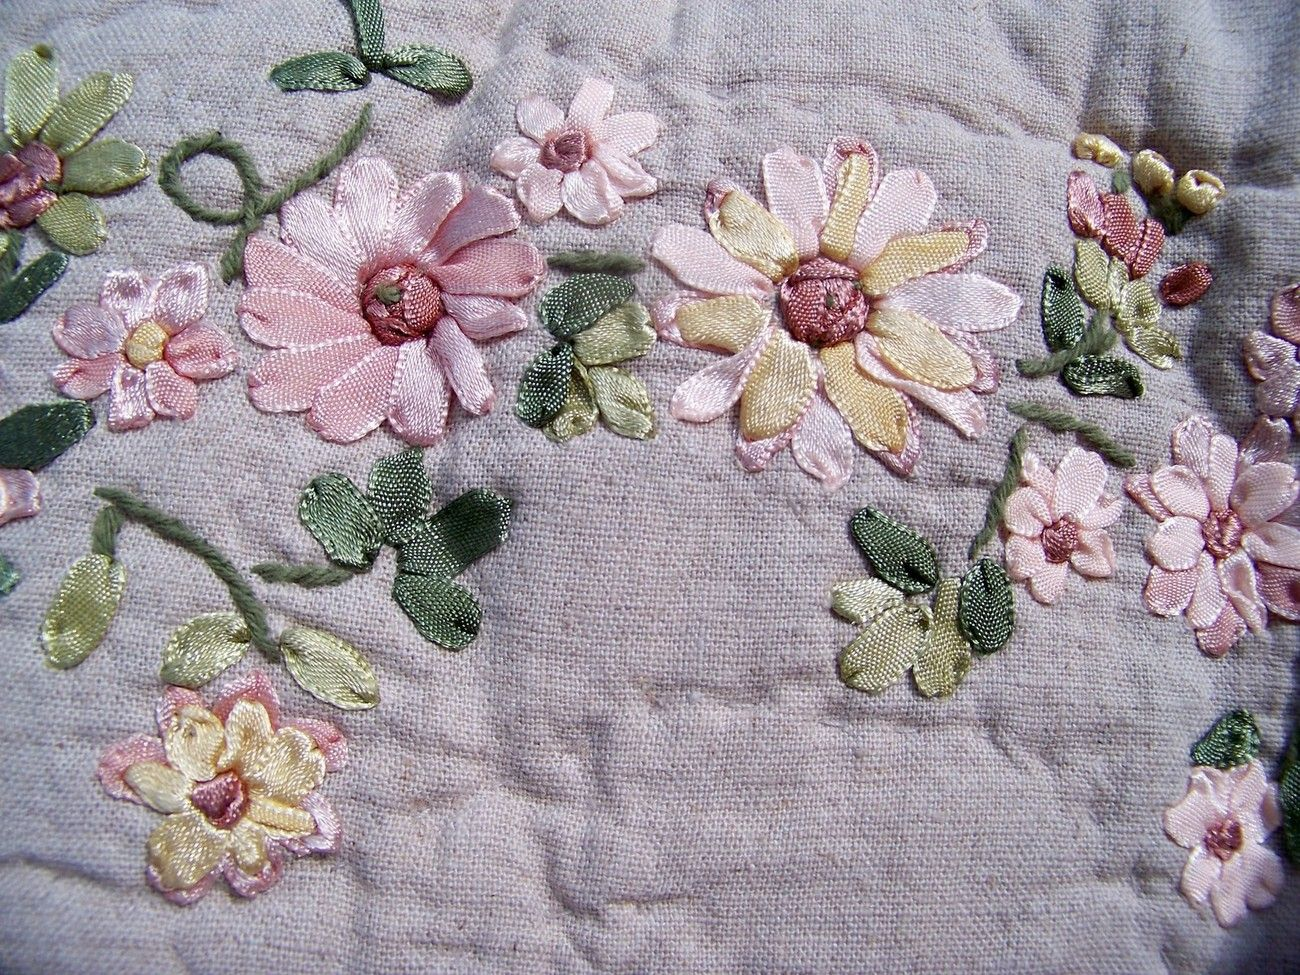 Ribbon embroidery bedspread designs - Sold Quilt Coverlet Bedspread Ribbon Embroidery Luxury Oversize Twin Size Fine Co